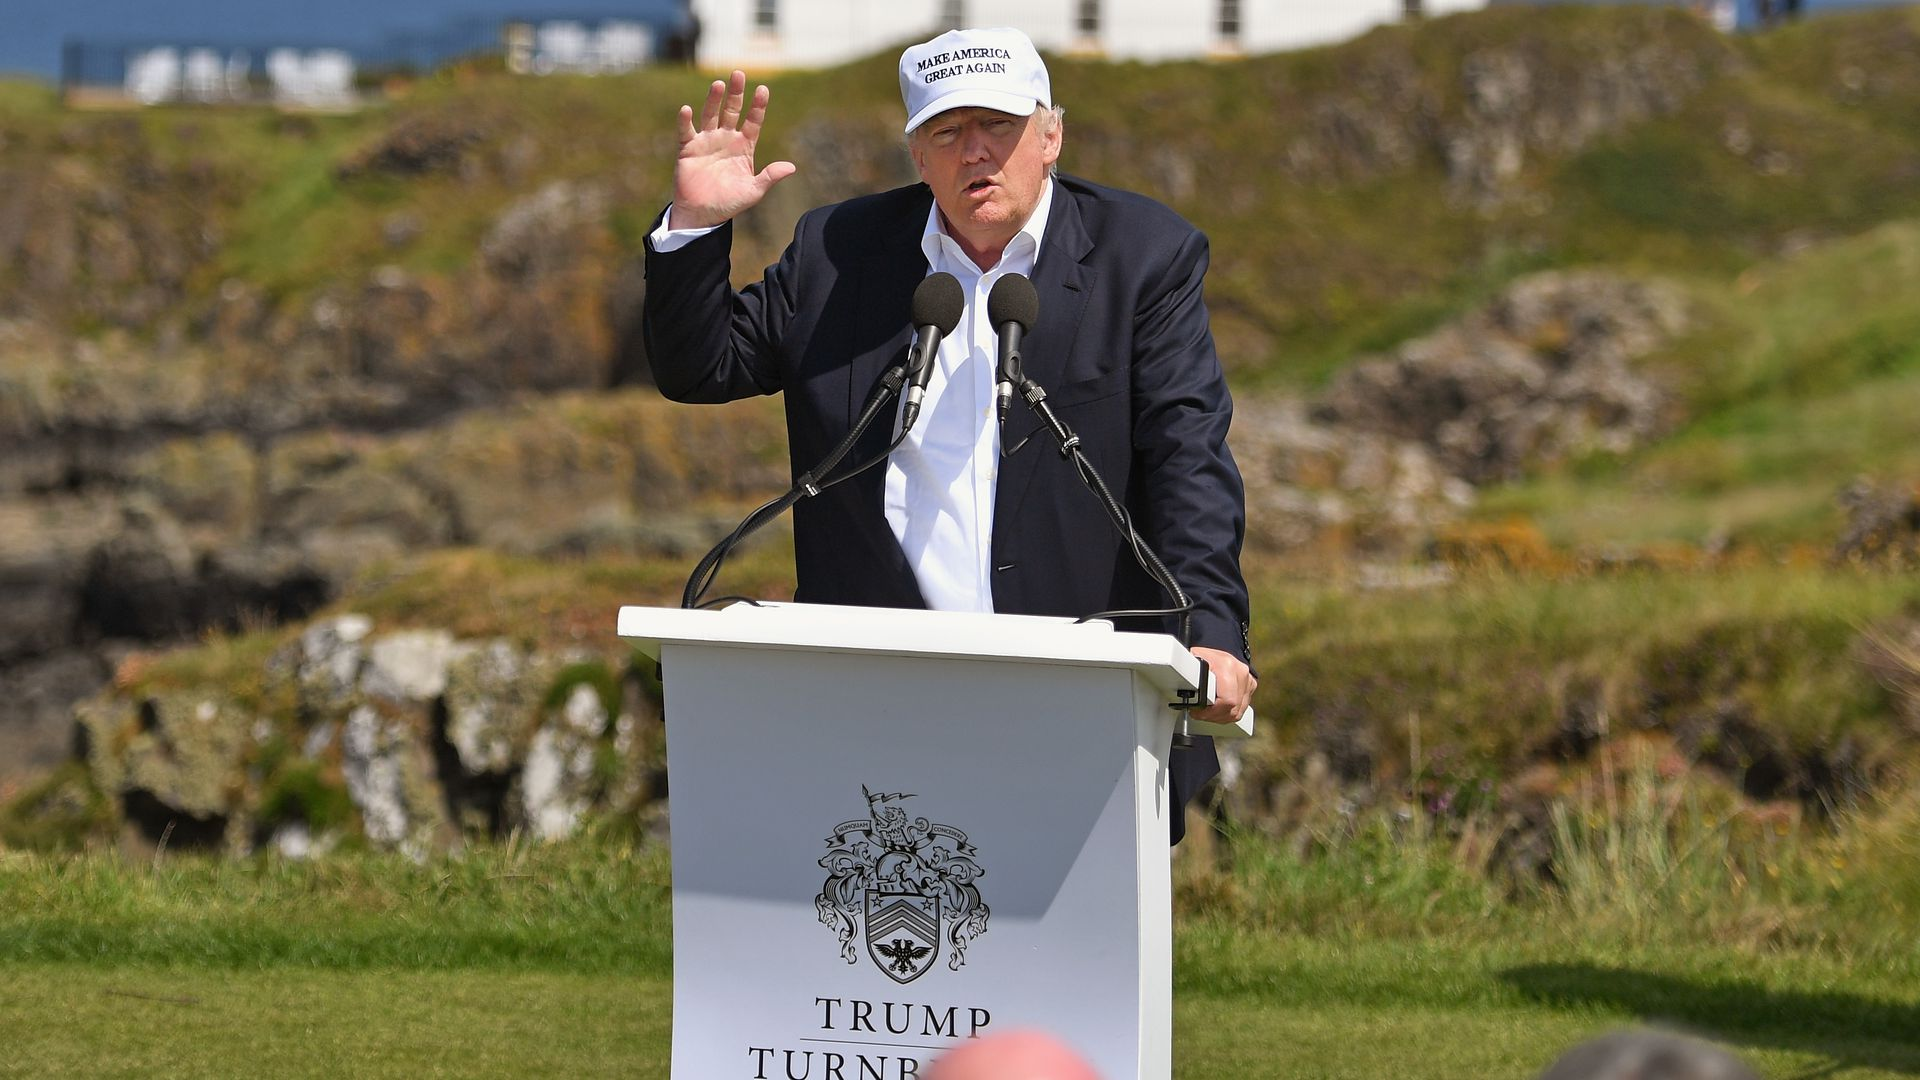 Trump talking at the resort in 2016.